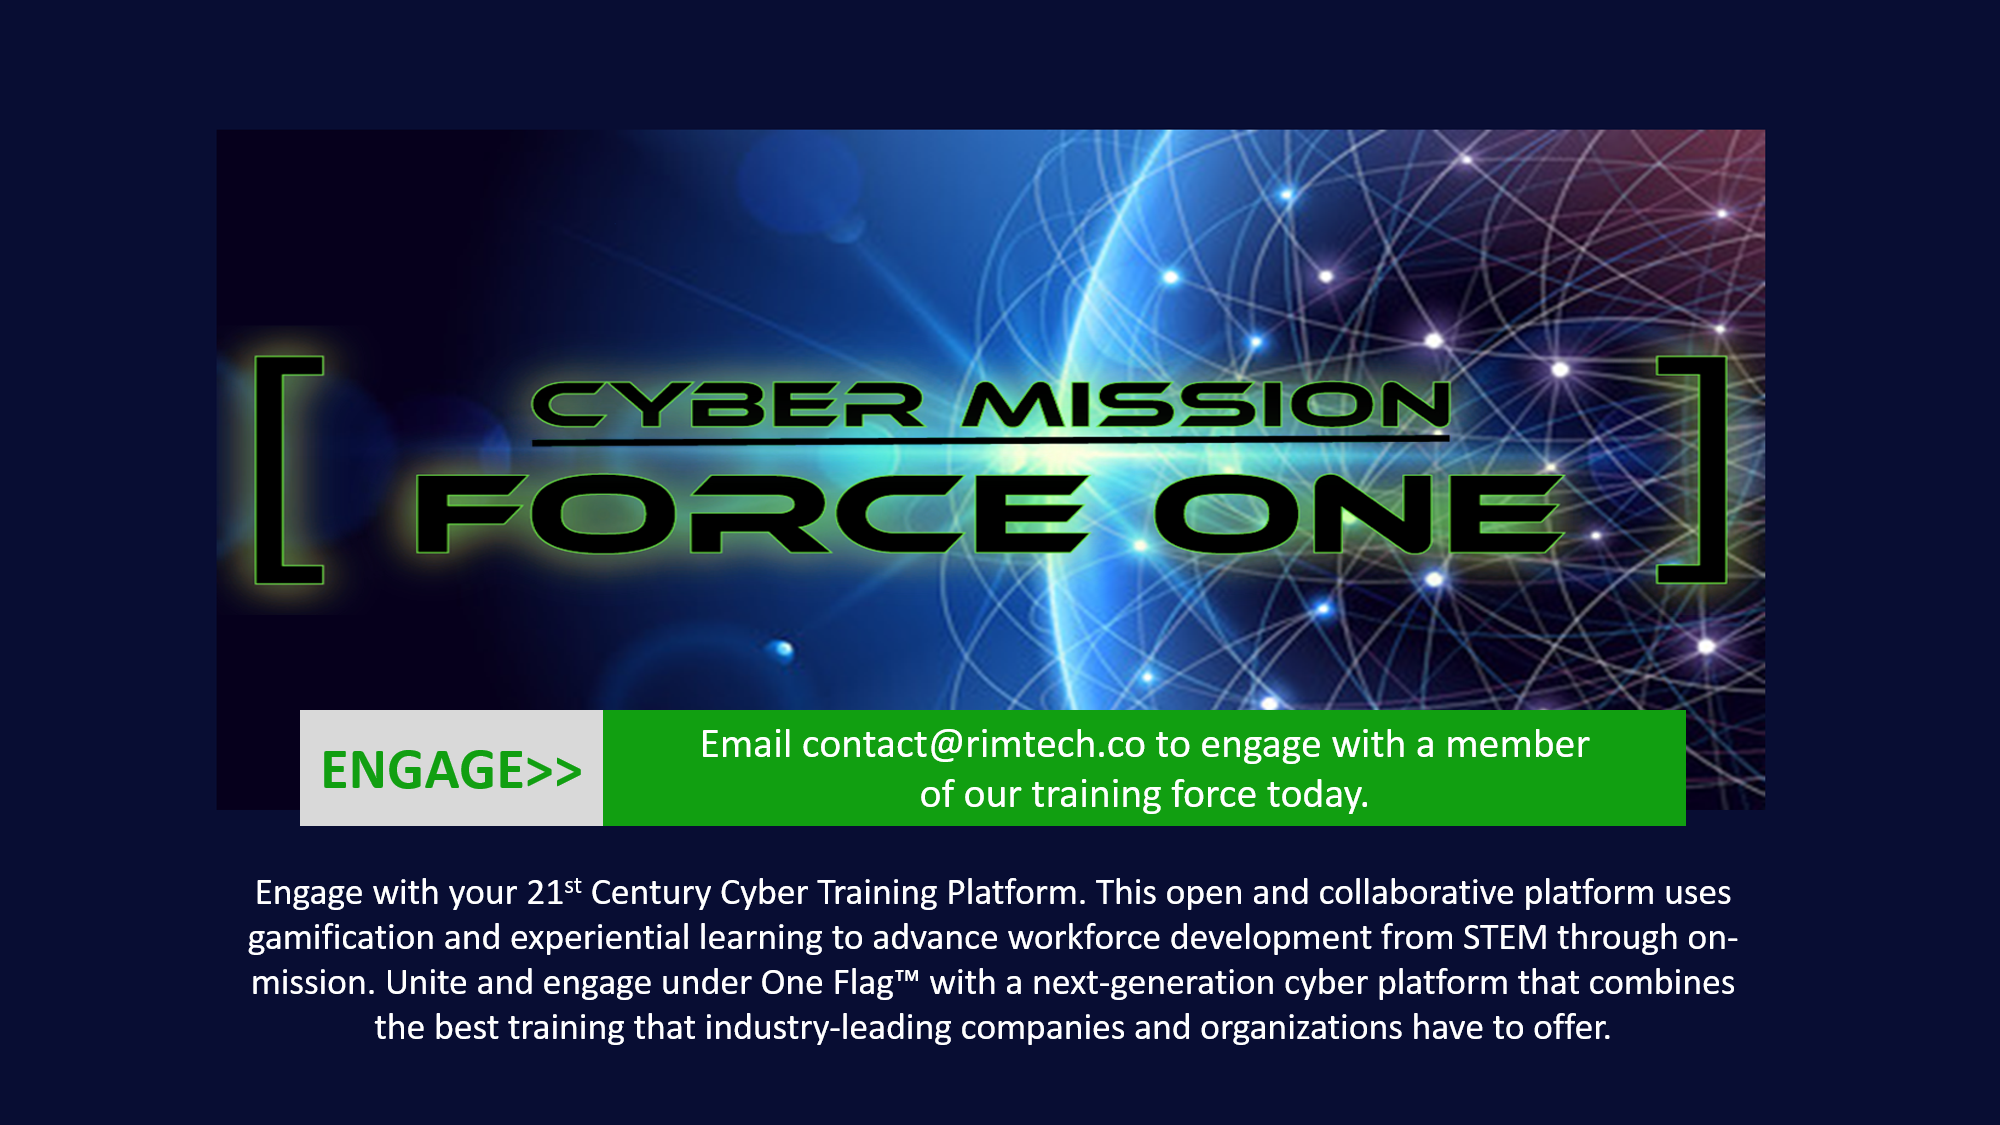 Cyber Mission Force One